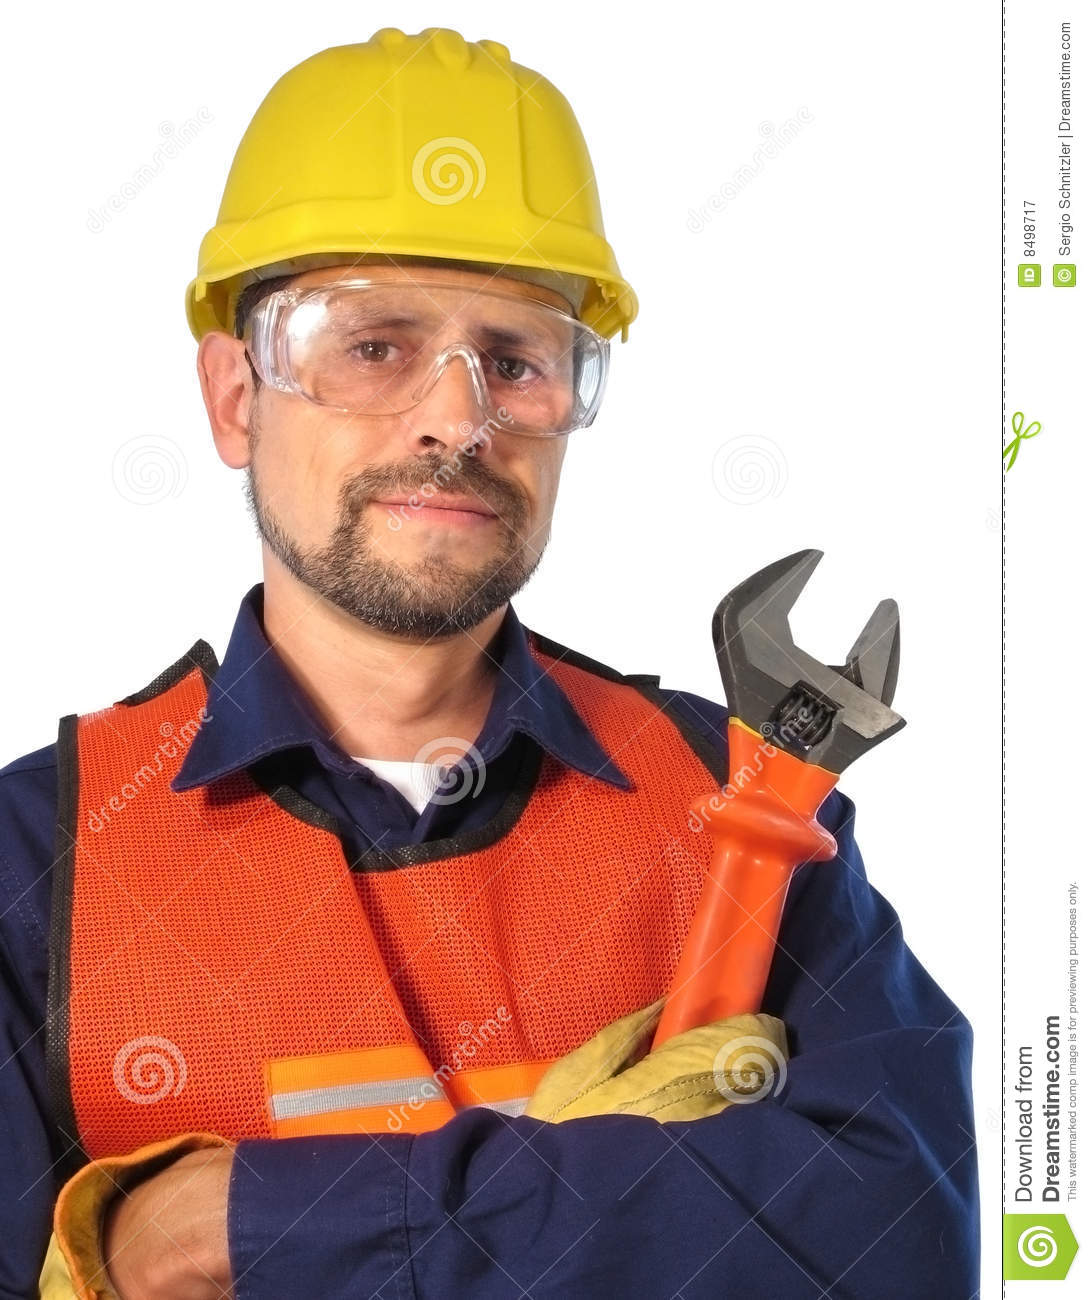 ... , wearing safety, helmet, glasses and gloves, carring a wrench